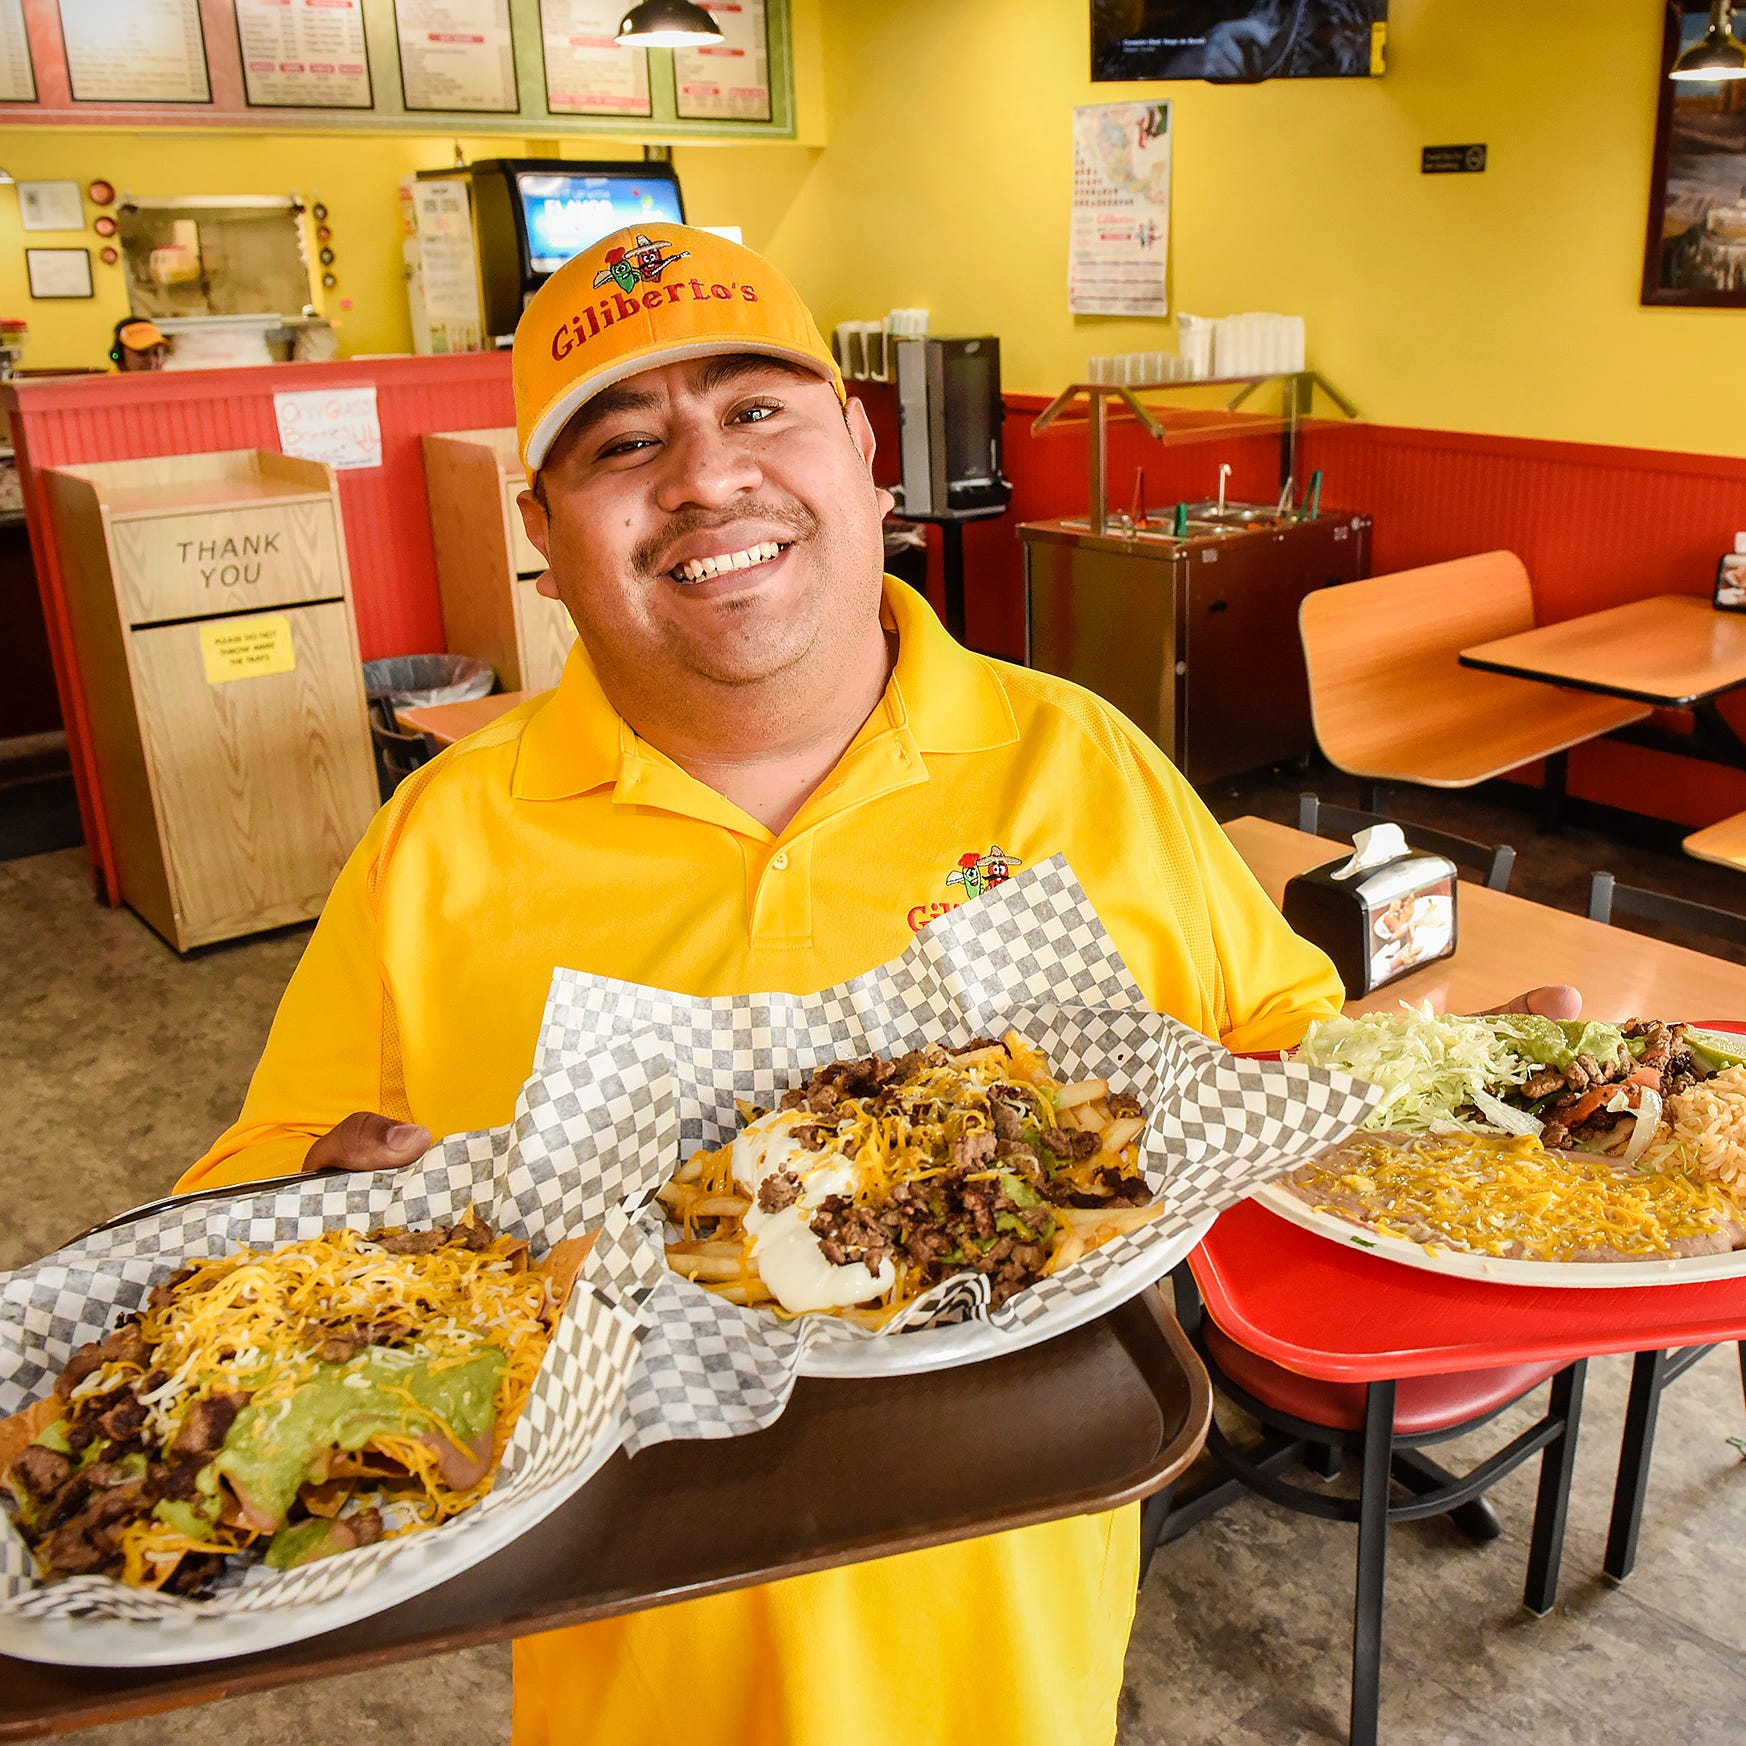 Giliberto's serves up round-the-clock Mexican eats